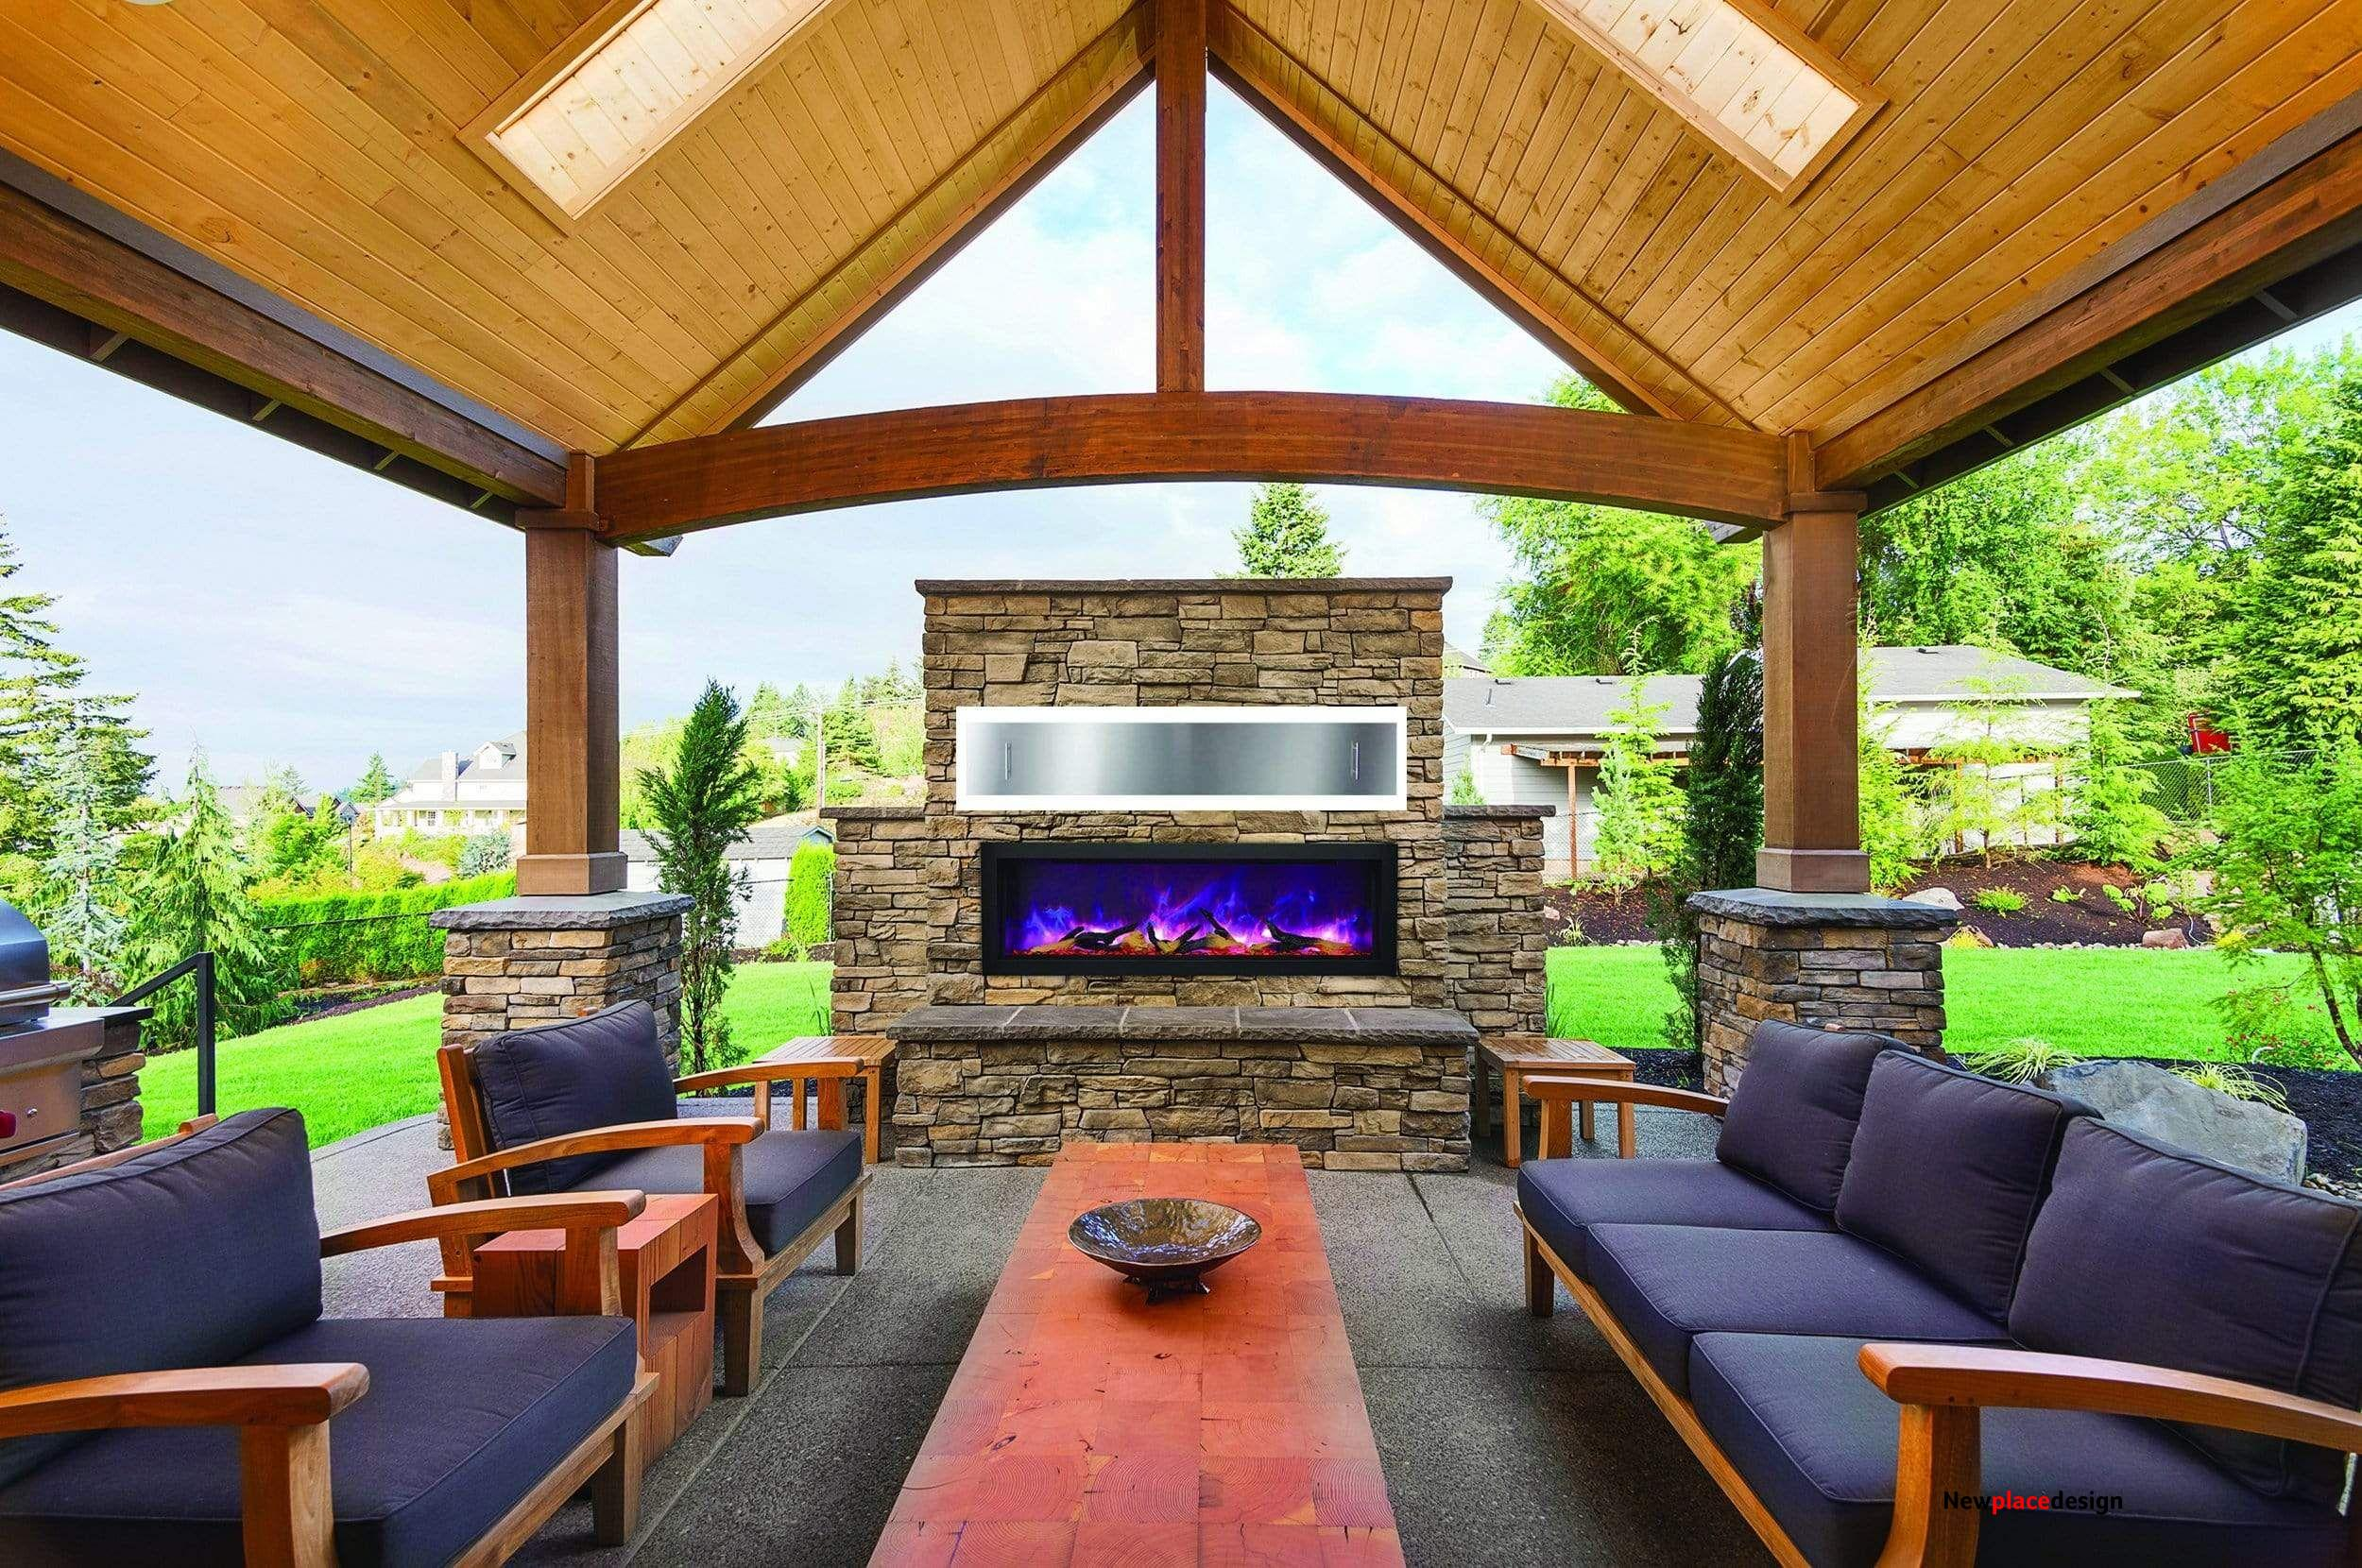 Amantii Panorama 50-inch Deep Built-in Indoor/Outdoor Linear Electric Fireplace - Outdoor Installation w/ Cover